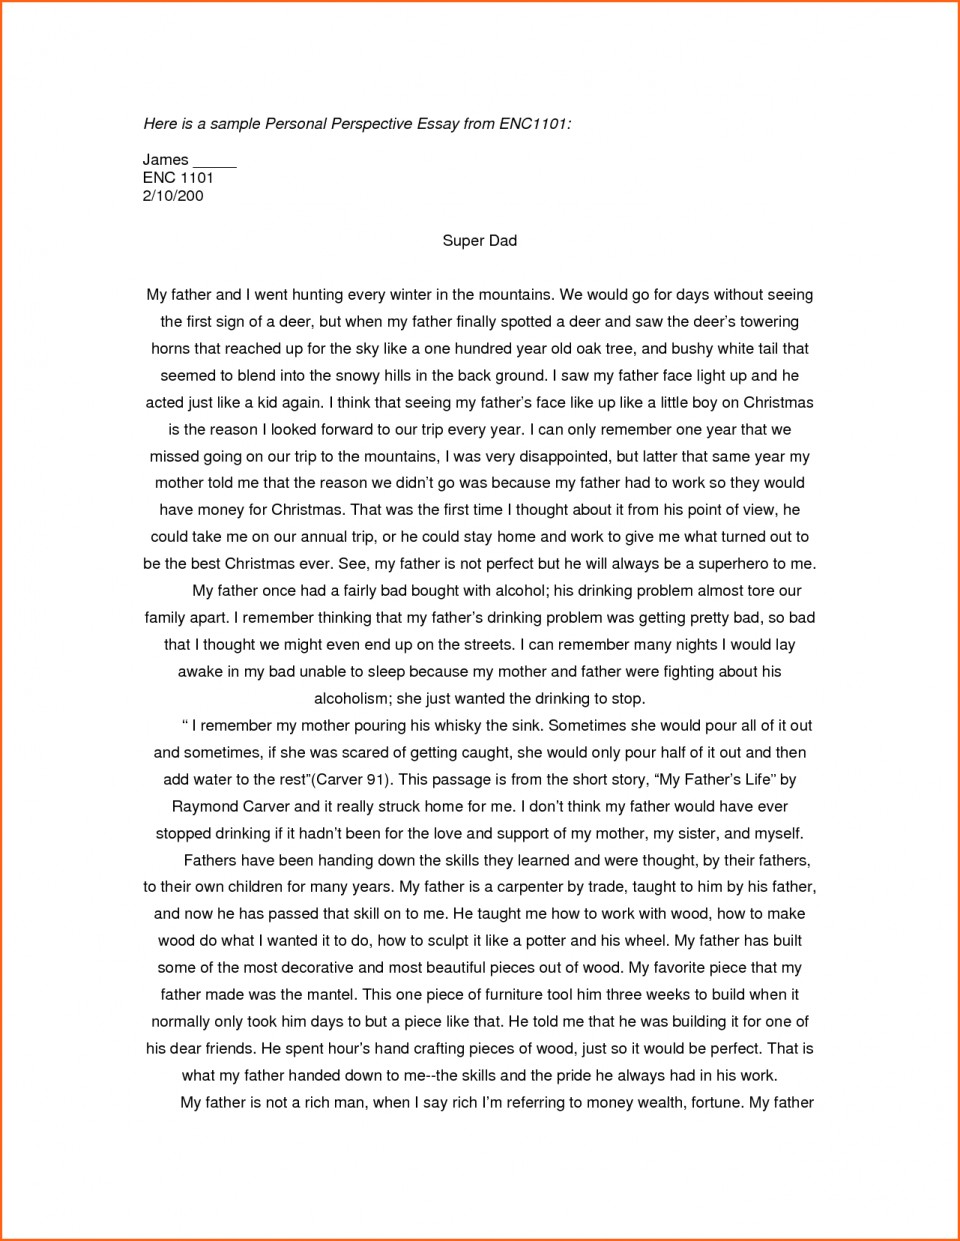 003 Essay Example Examples Of Personal Essays For College Applications L Stupendous Writing Prompts Ks2 Structure Outline Format Scholarships 960